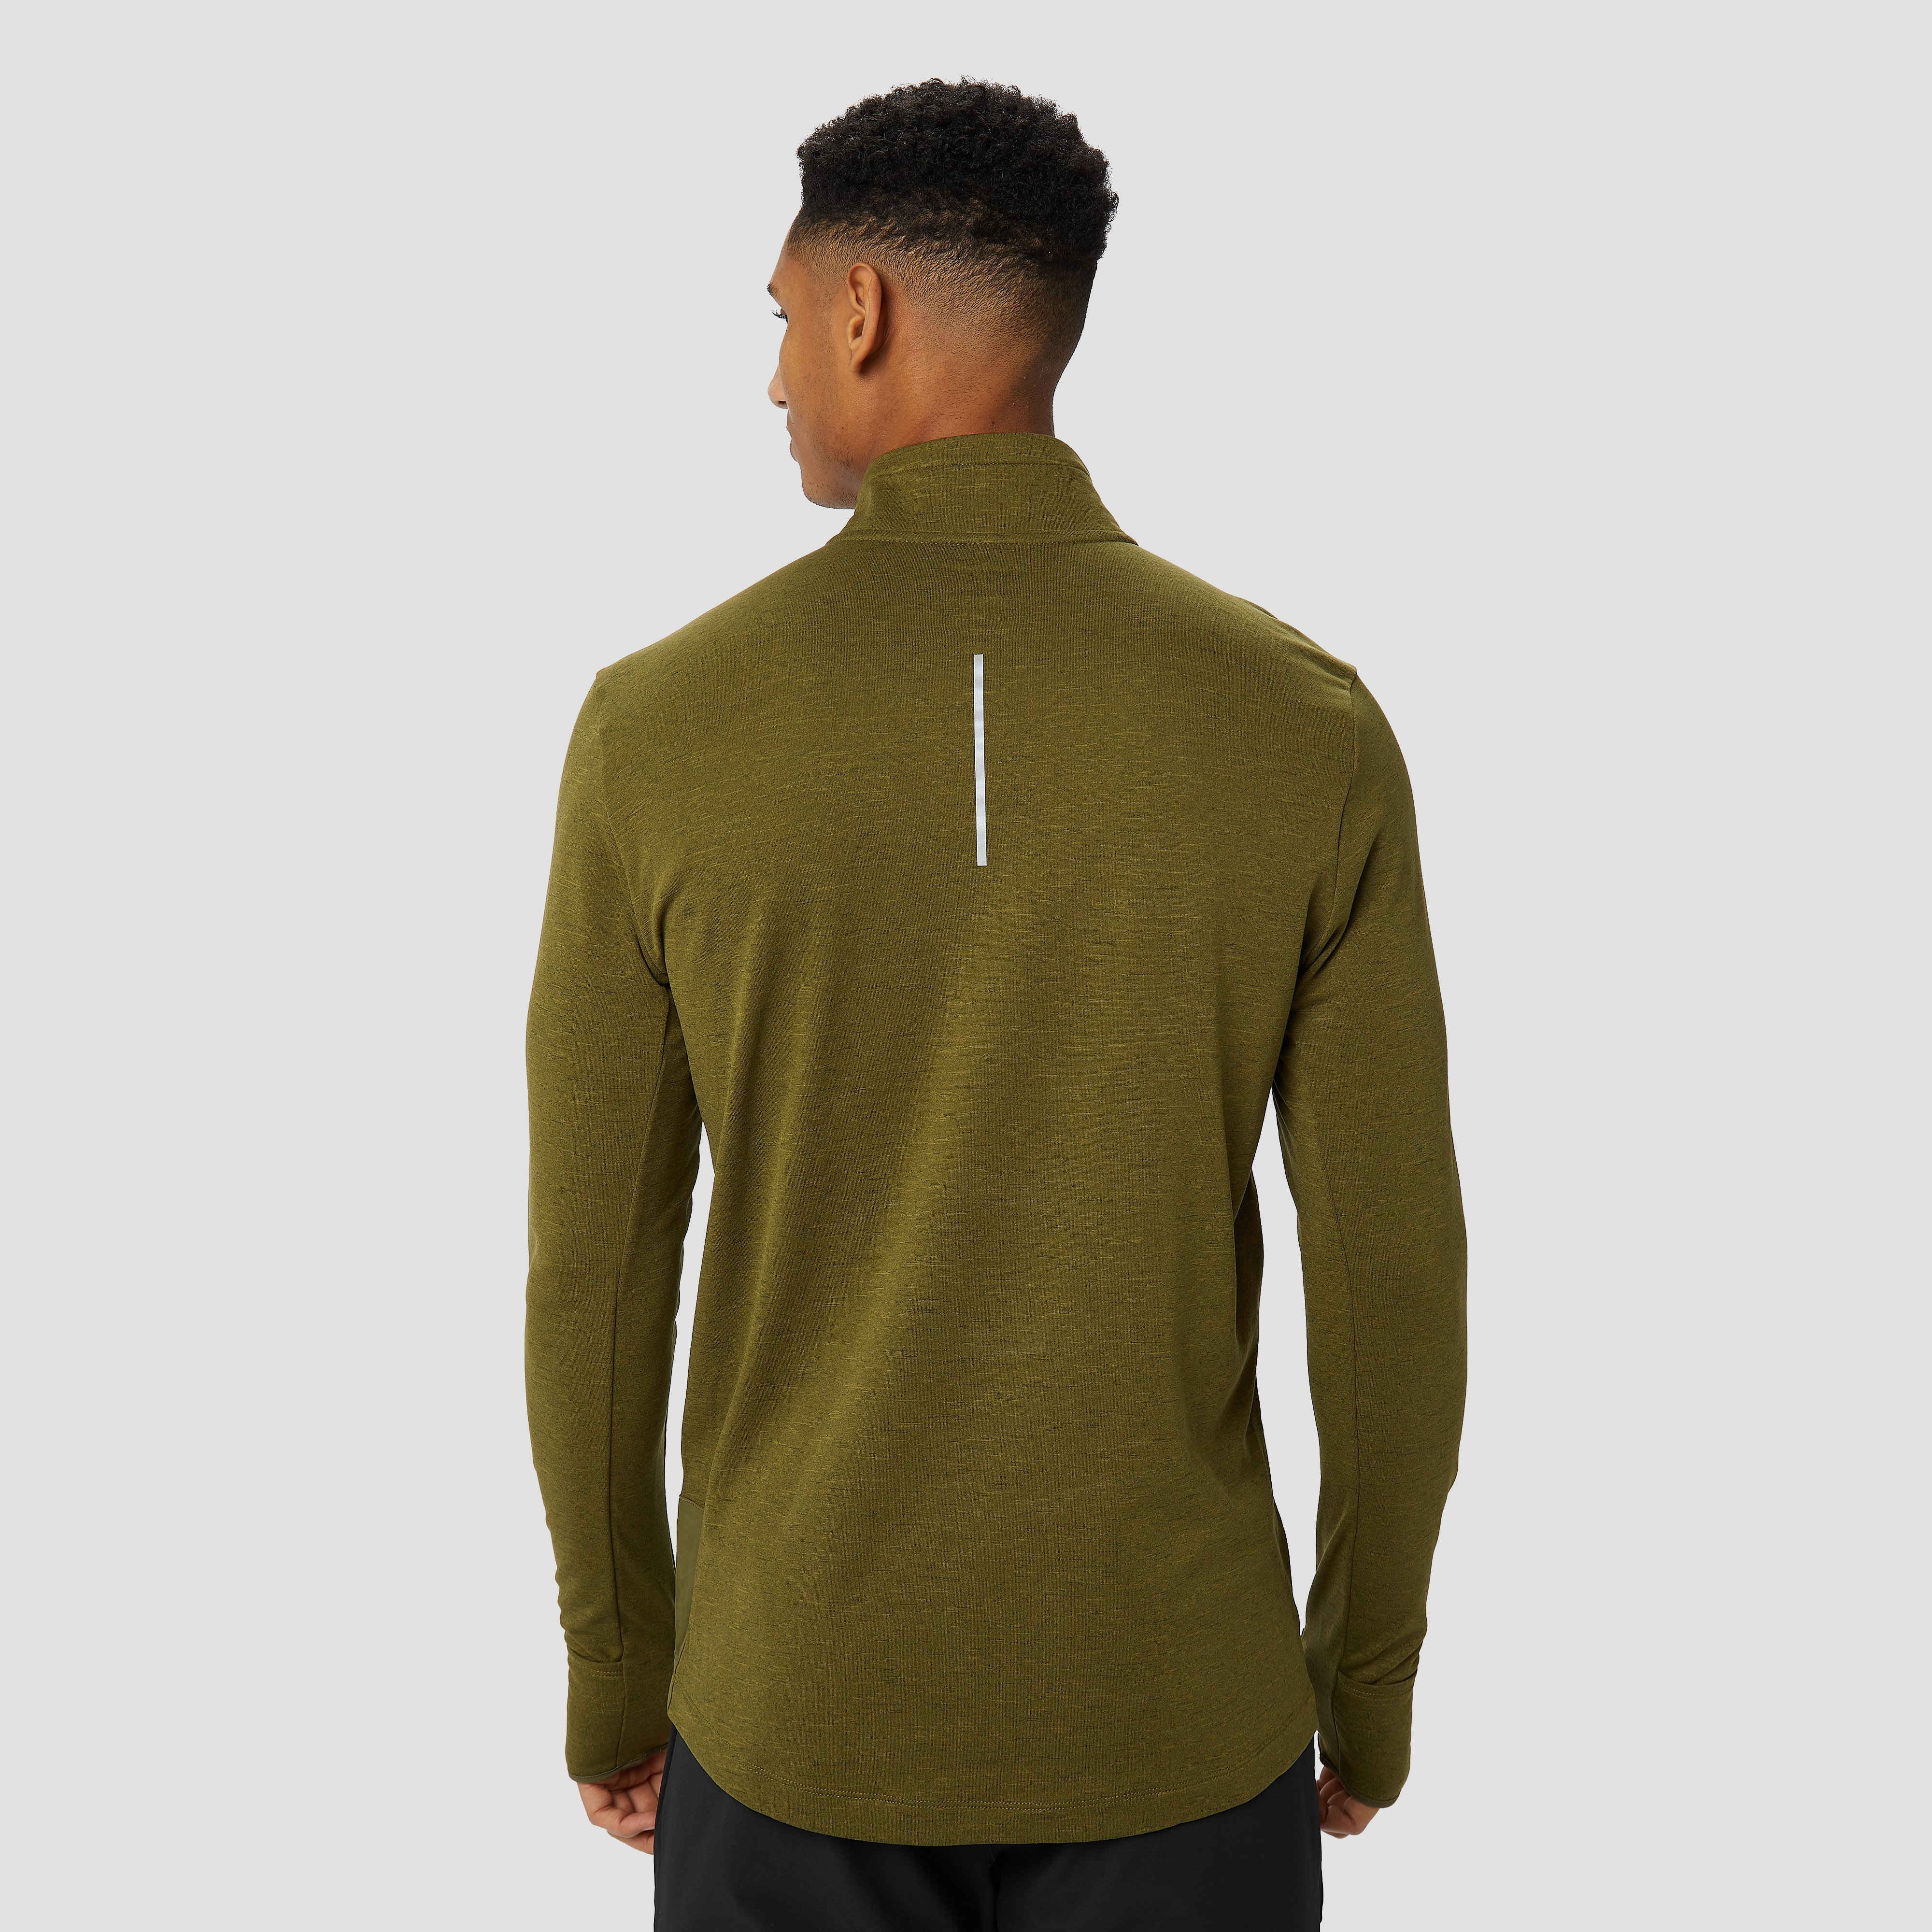 NIKE THERMA SPHERE ELEMENT HARDLOOPTOP GROEN HEREN